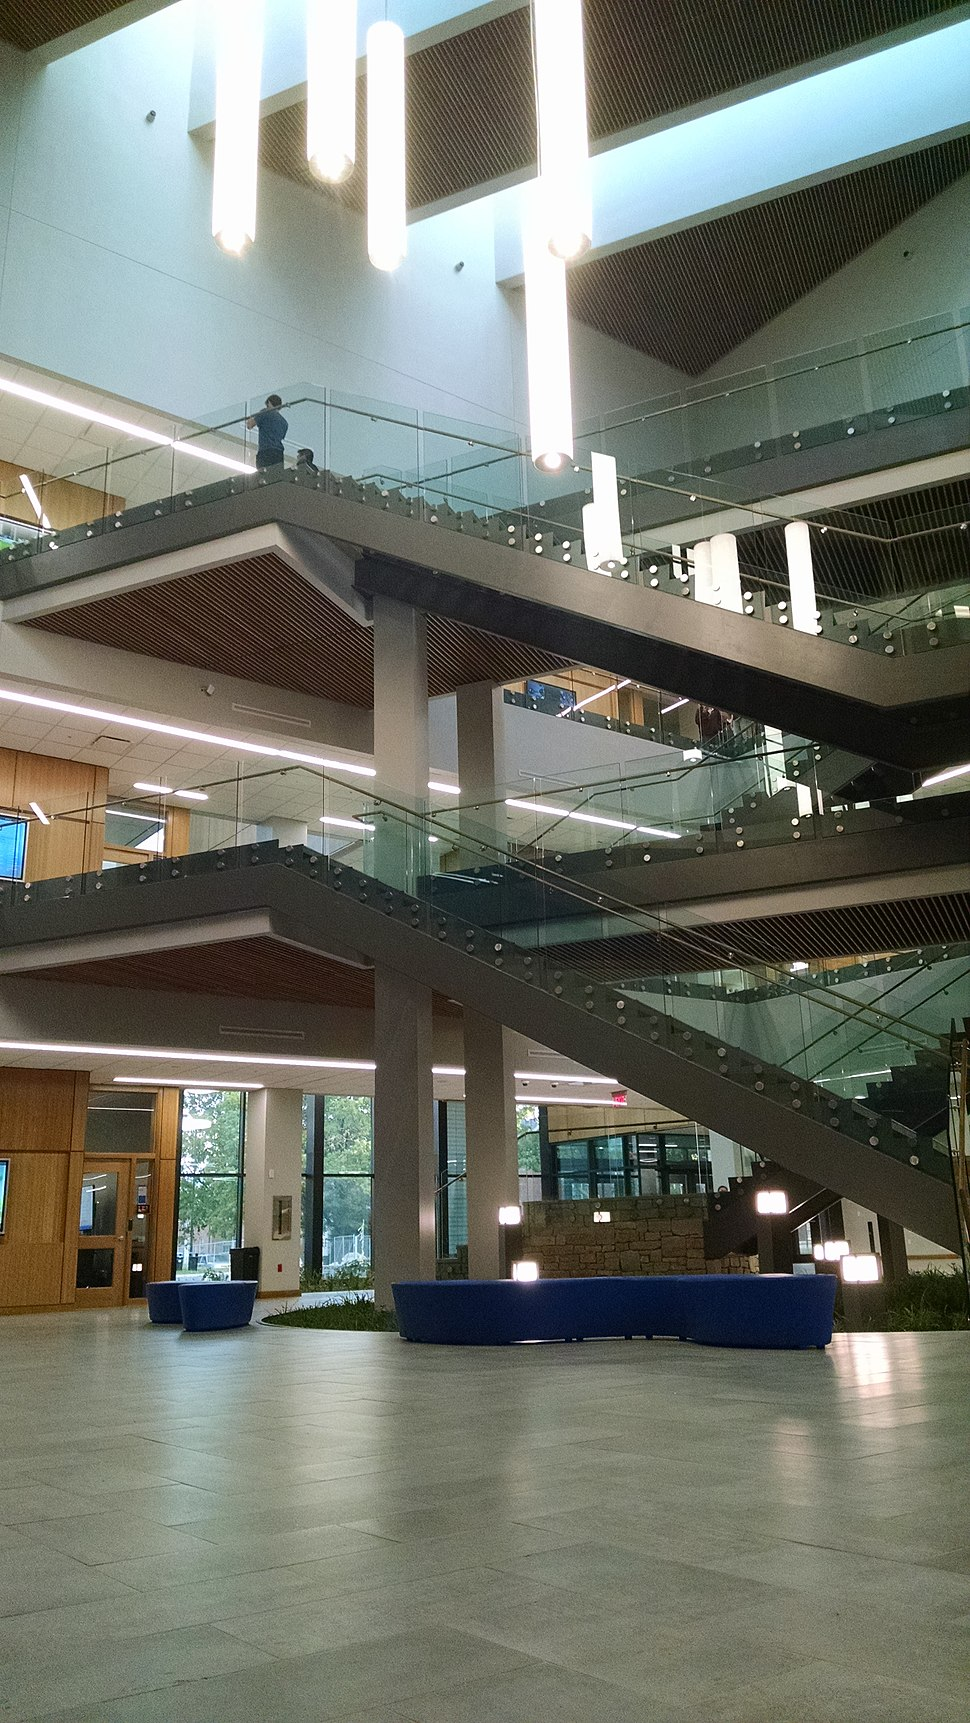 Atrium of Don and Cathy Jacobs Science Building